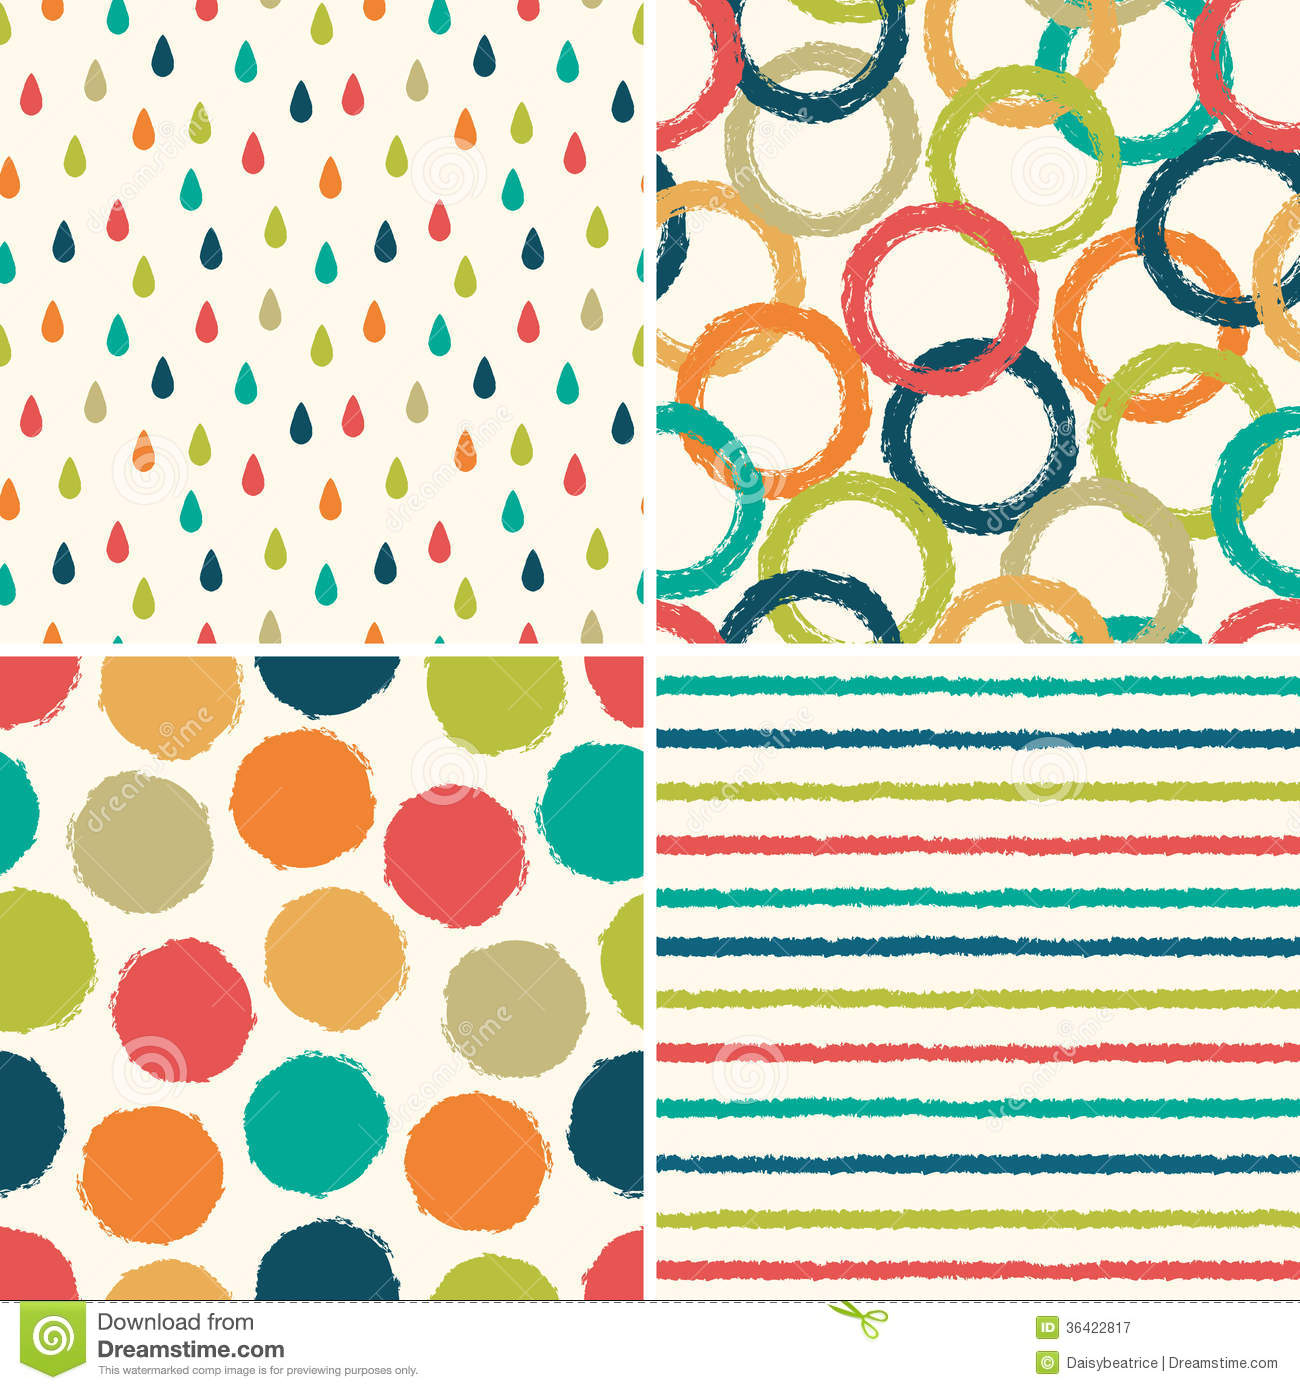 Clipart background patterns image freeuse library clipart background patterns – Clipart Free Download image freeuse library